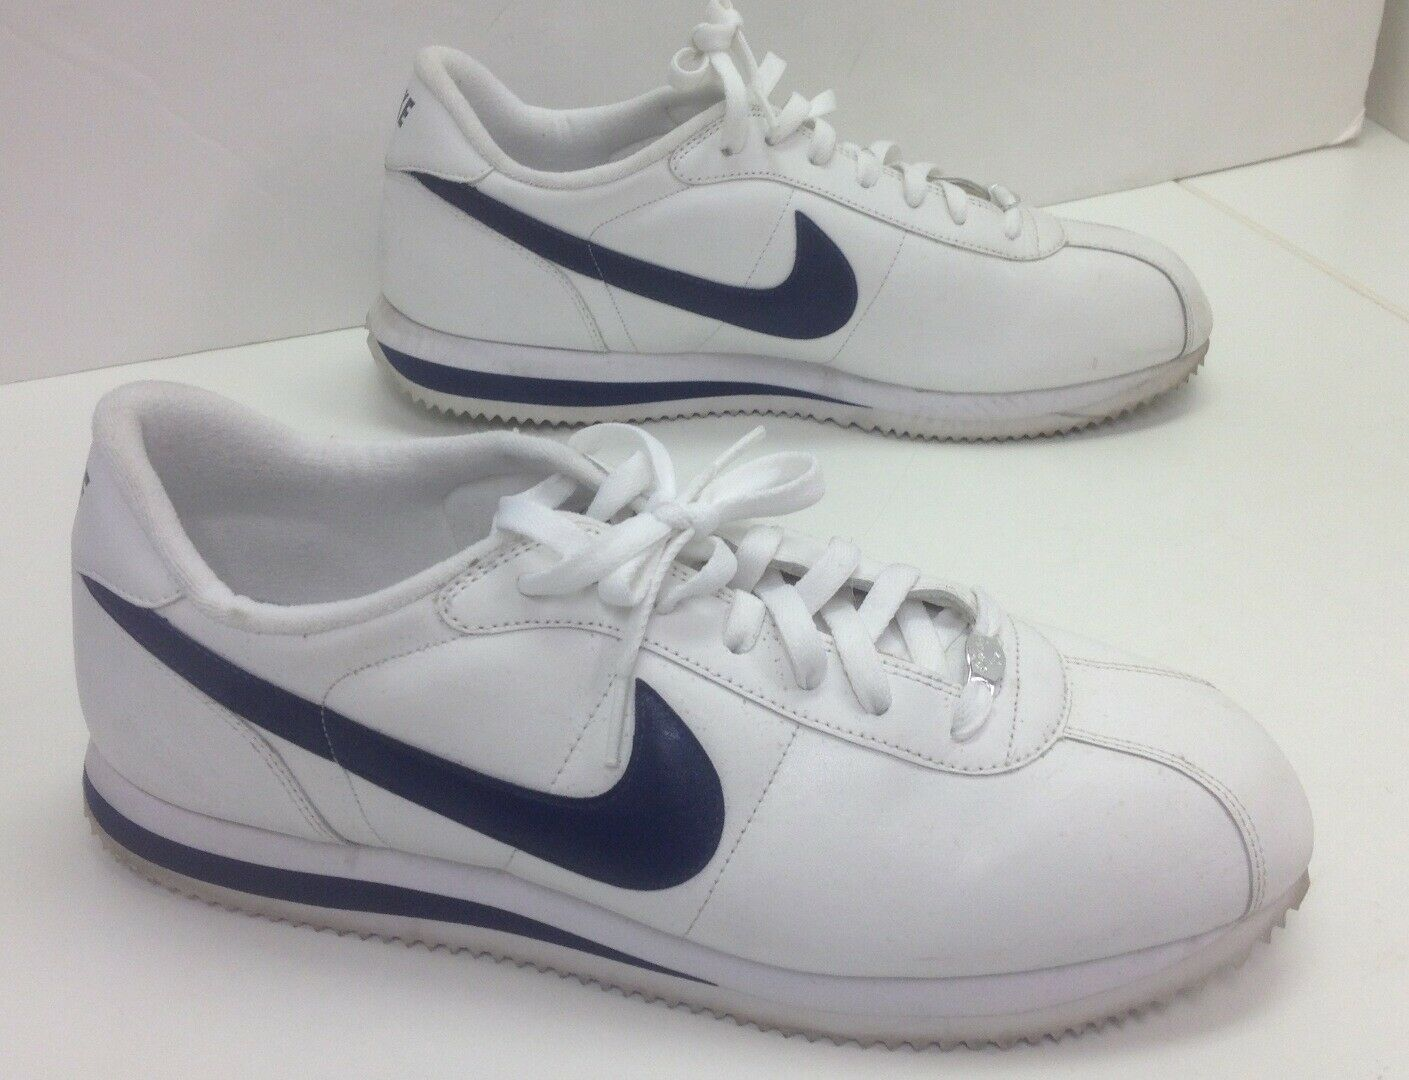 NIKE White Navy bluee Trim Round Toe Low Top Lace Up Athletic Sneaker Sz 13 B4914